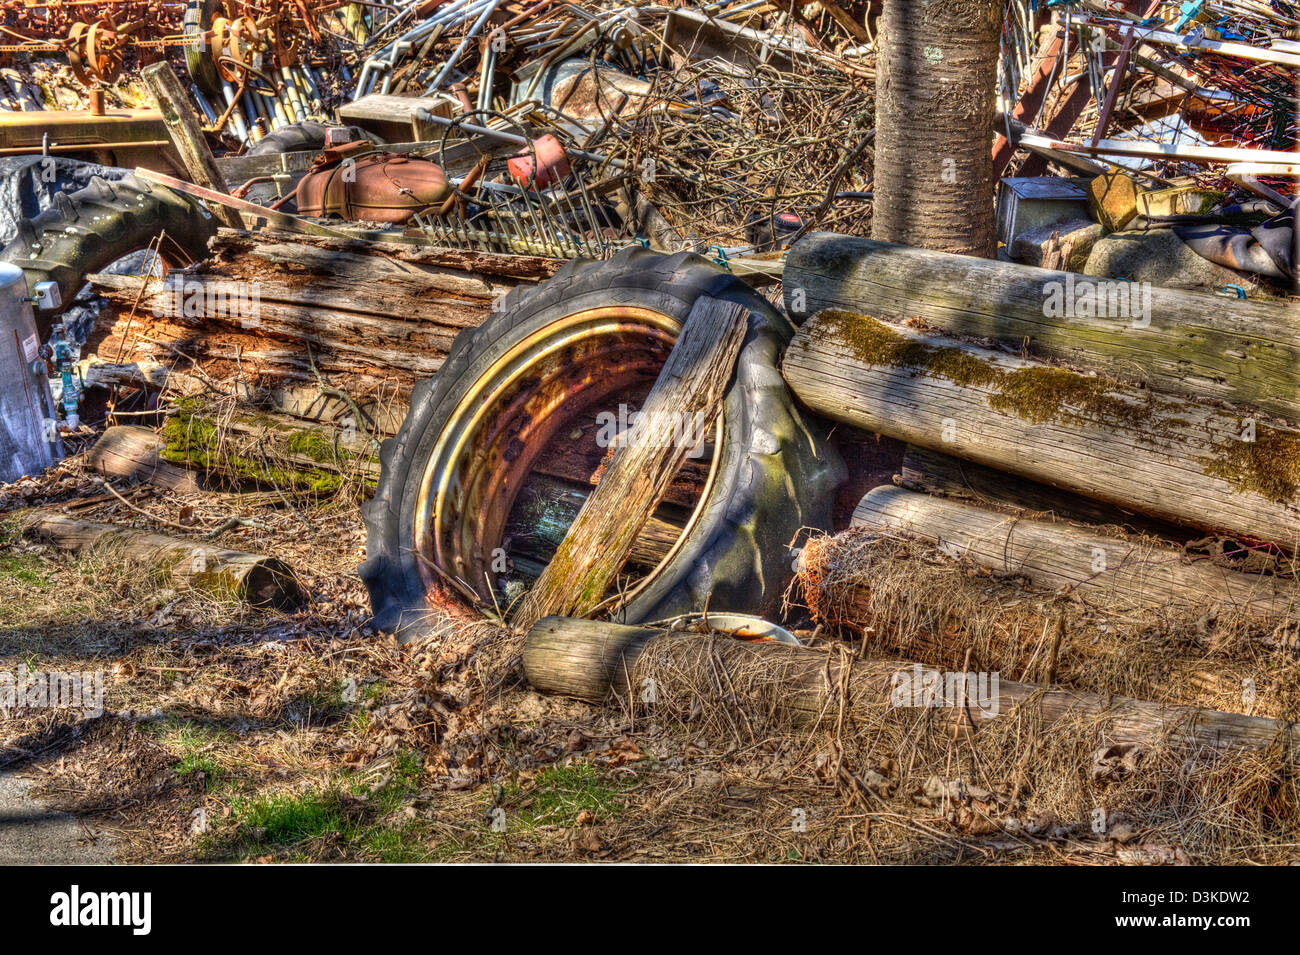 ' The Town Junk Yard ' - Stock Image